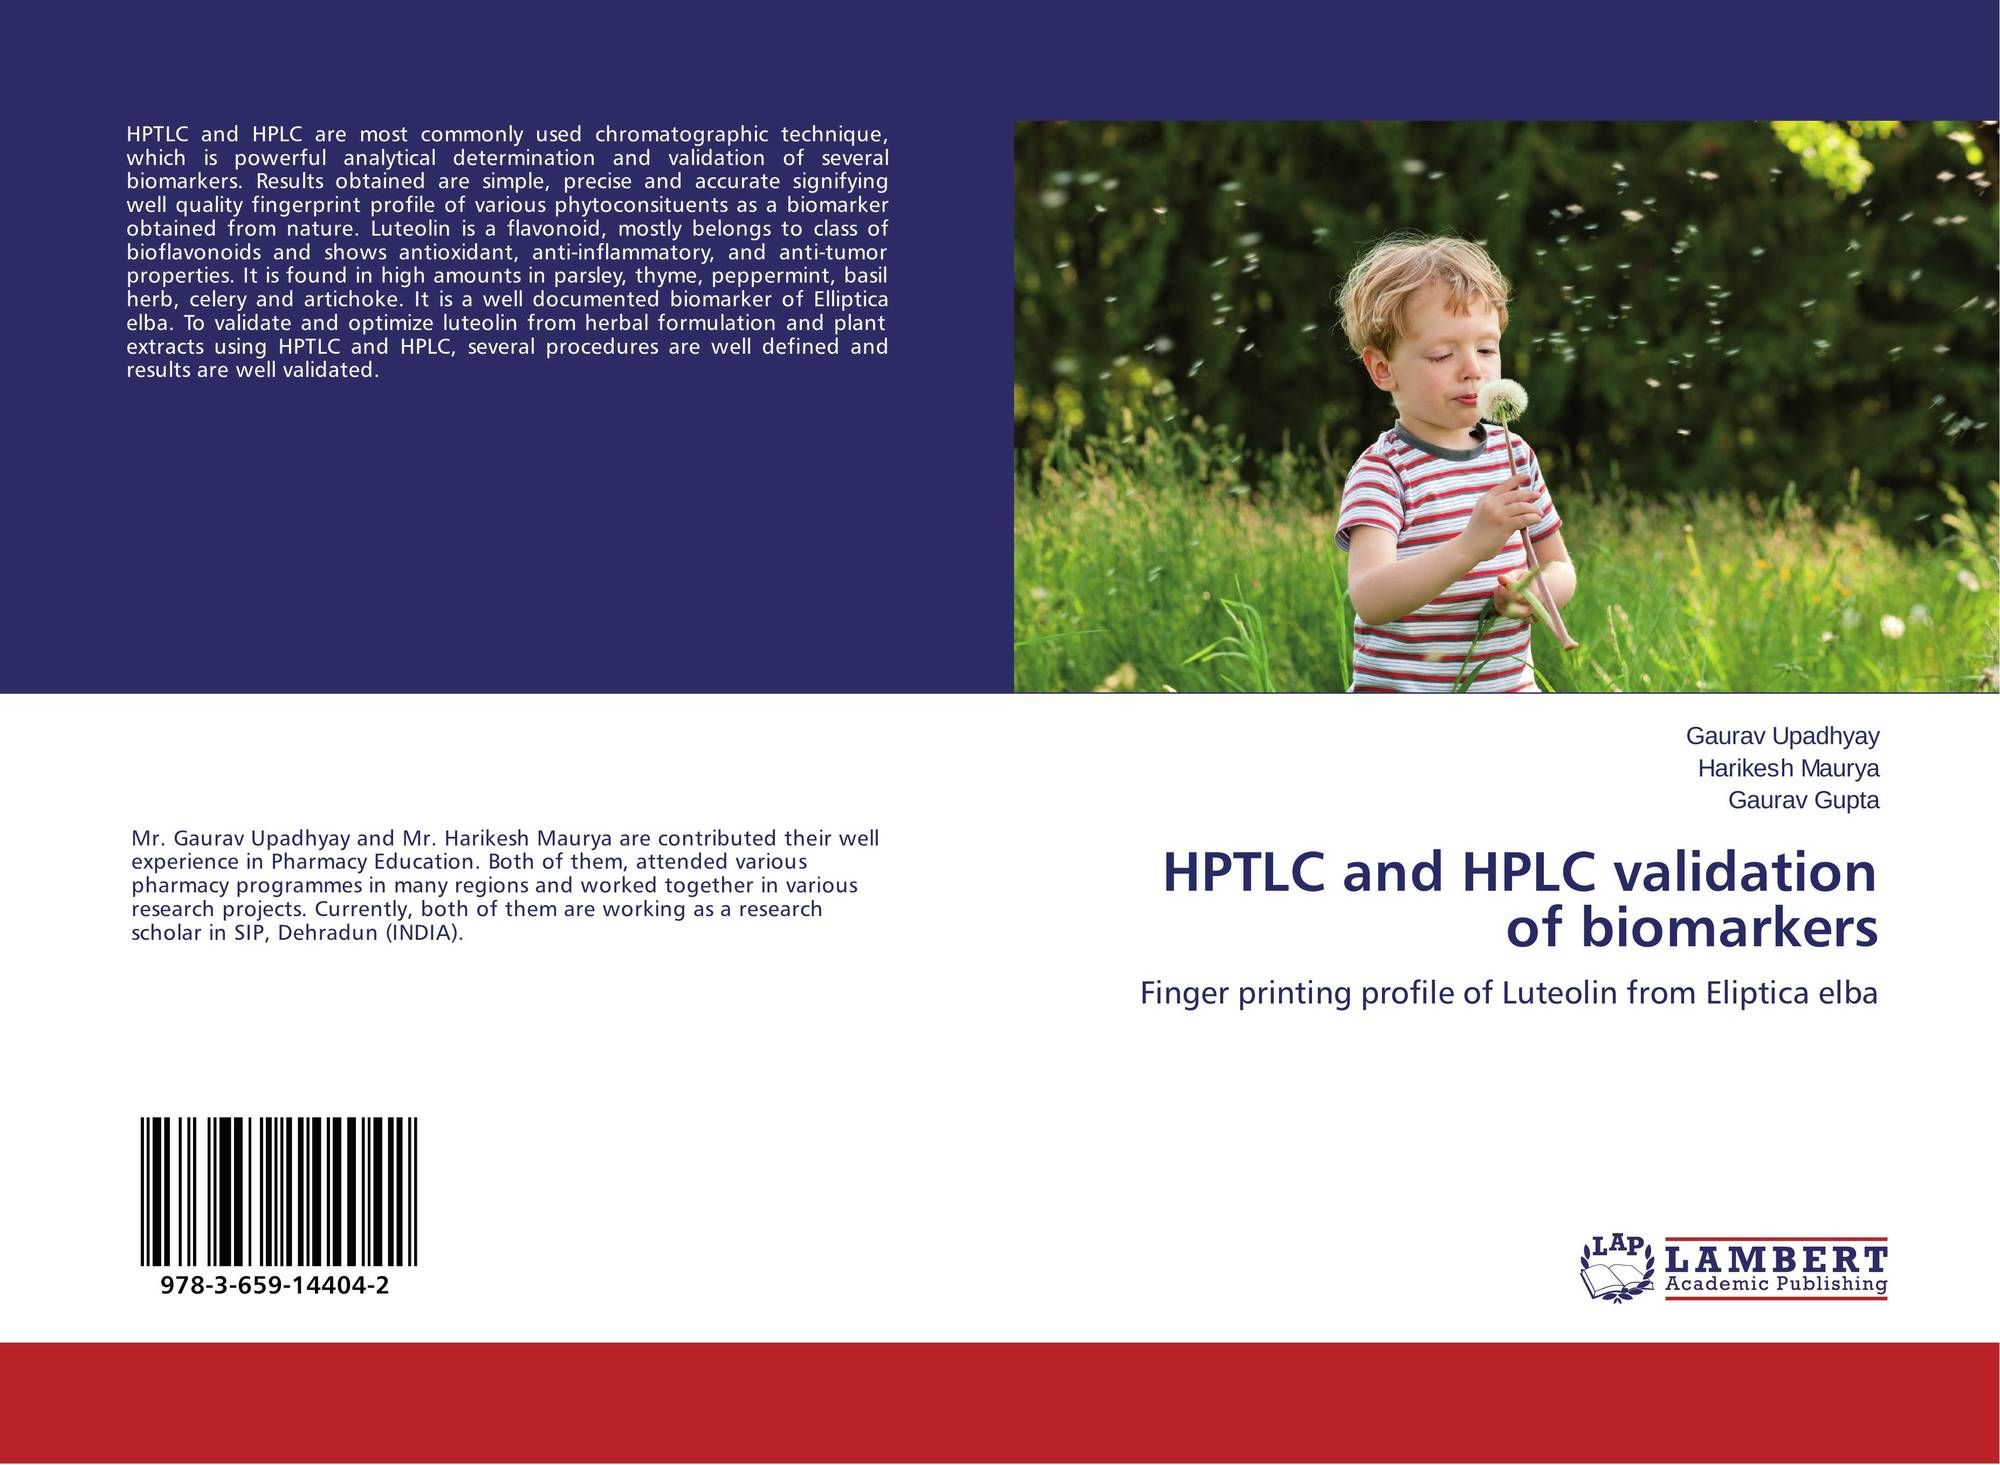 HPTLC and HPLC validation of biomarkers, 978-3-659-14404-2 ...